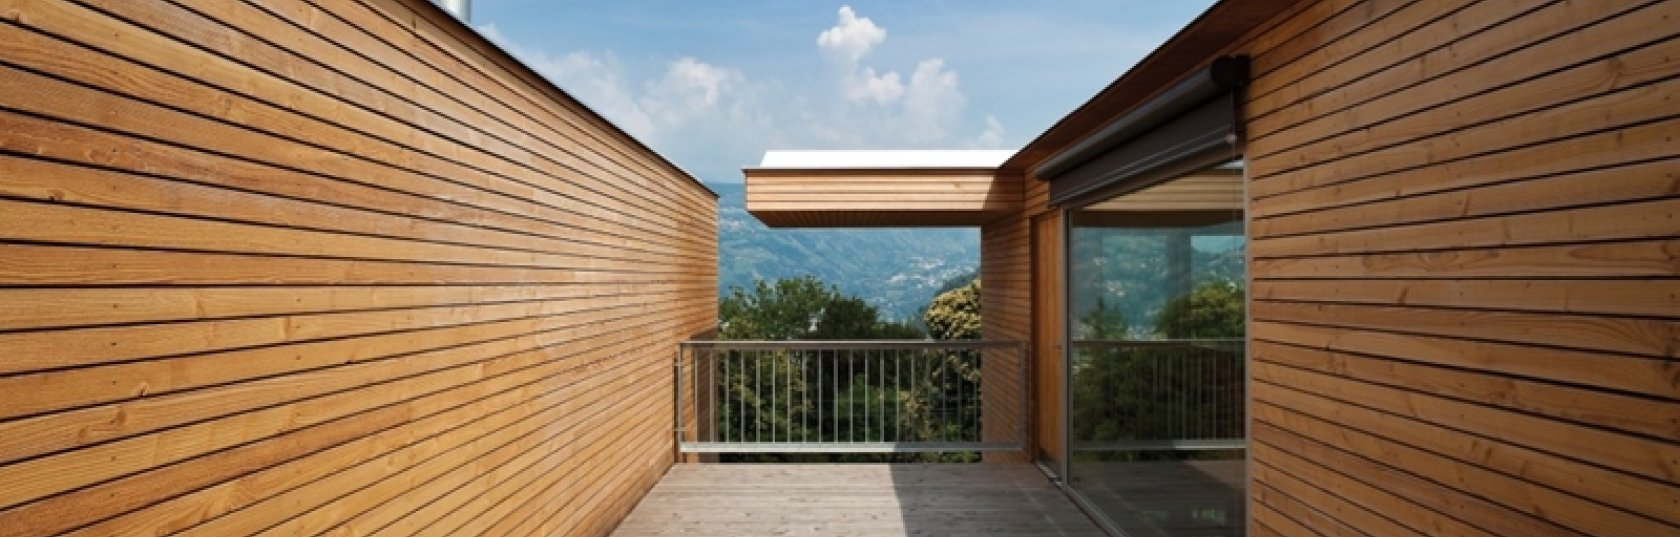 Extending the life of timber cladding